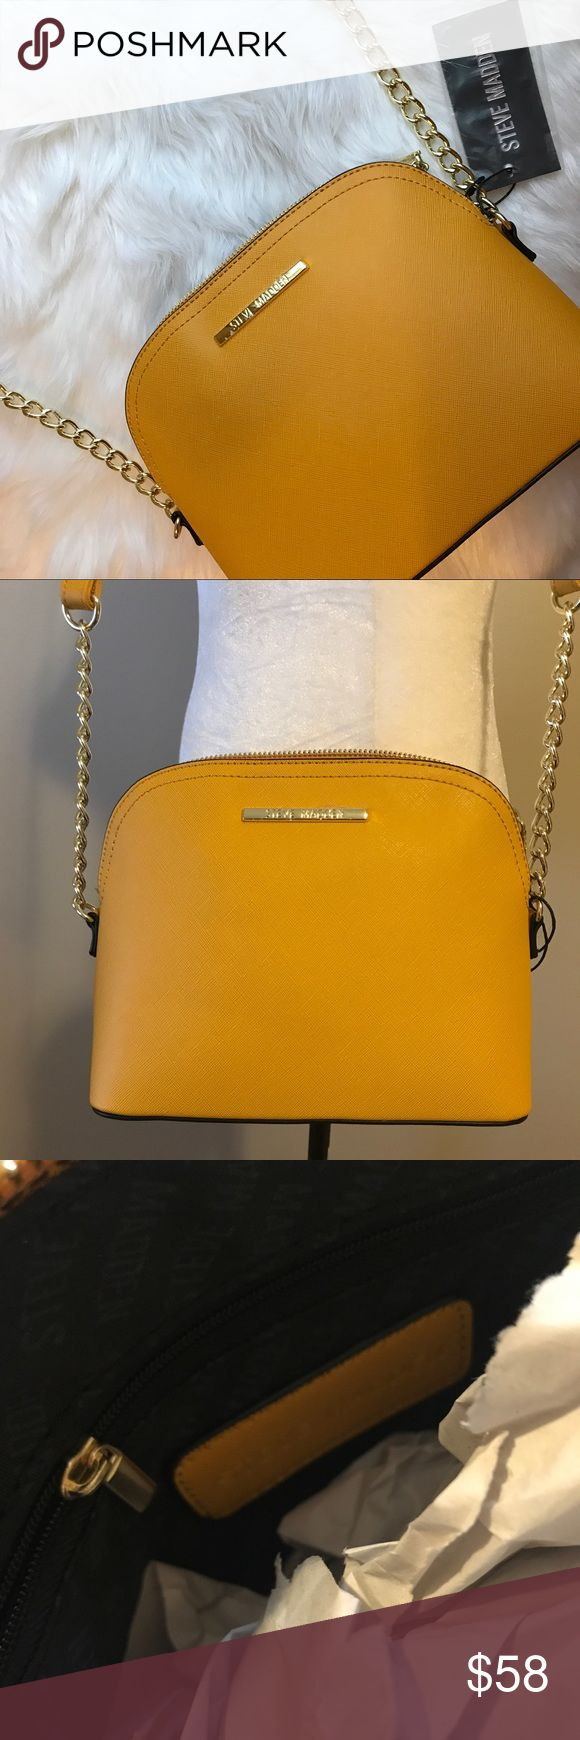 BRAND NEW Steve Madden Mustard Crossbody Brand new with tags attached. Hardware color is gold. Features two inside pockets, one being a zippered pocket. Length is 9 inches, Height is 7 1/2 inches, and Width is 3 1/2 inches. (All measurements are approximate) Steve Madden Bags Crossbody Bags